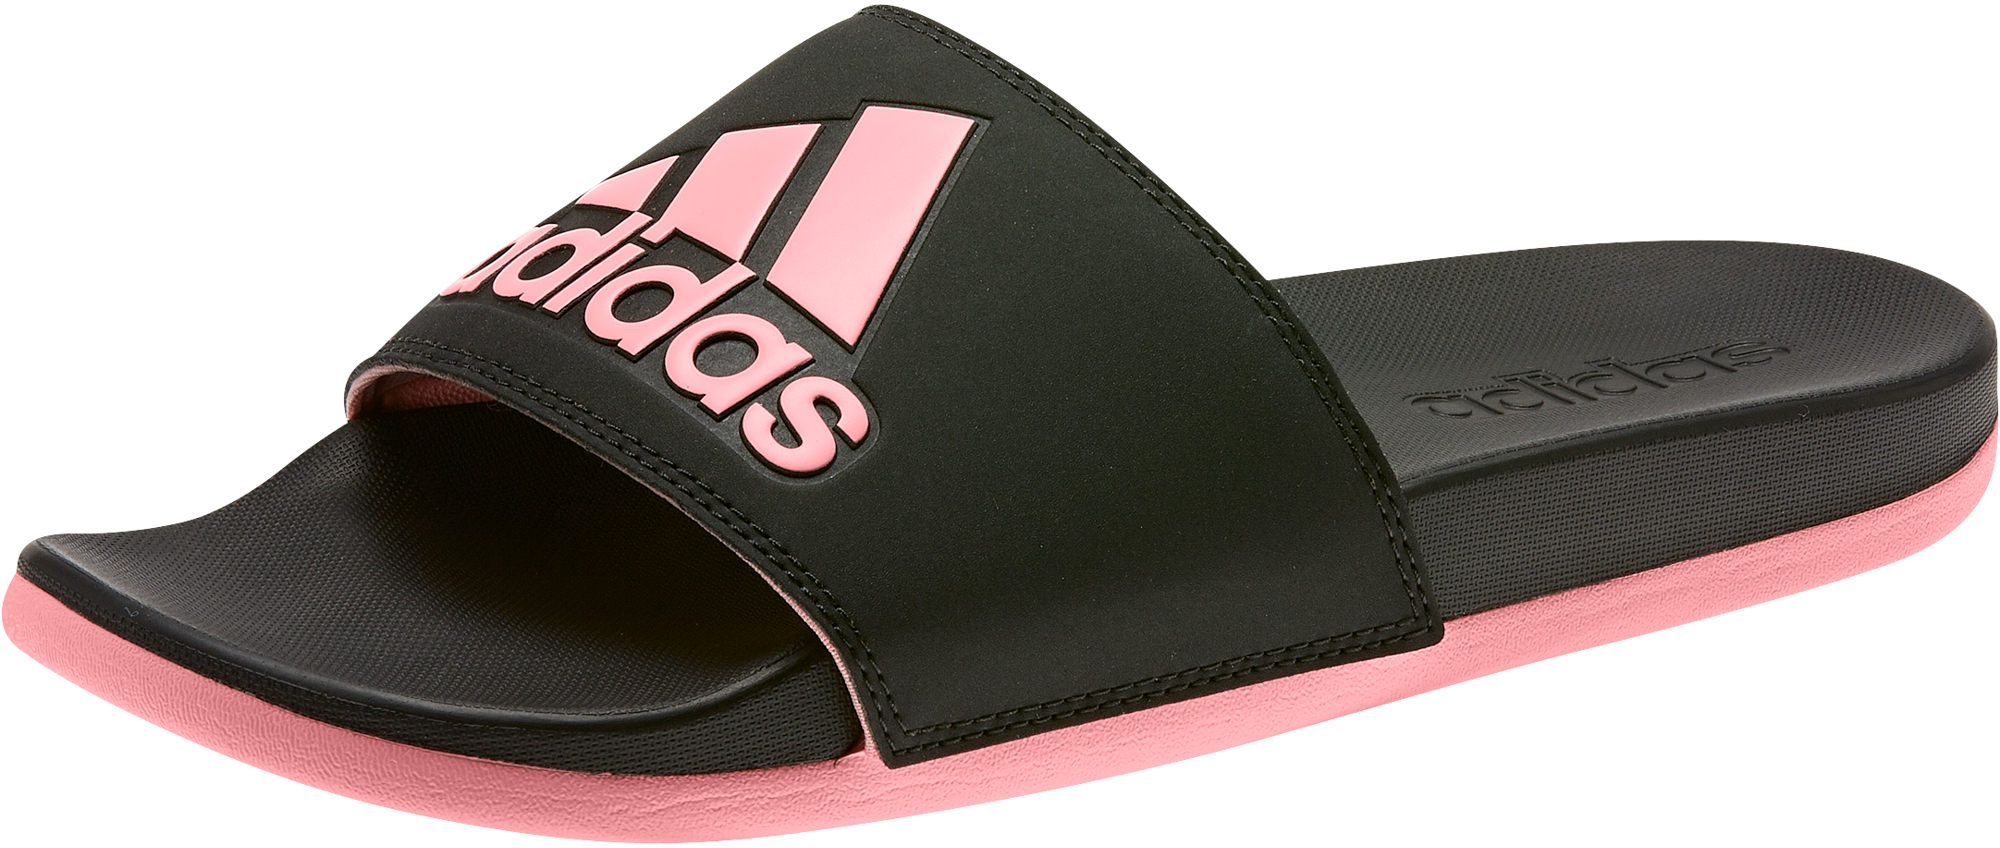 Adidas - Adilette | cycling shoes